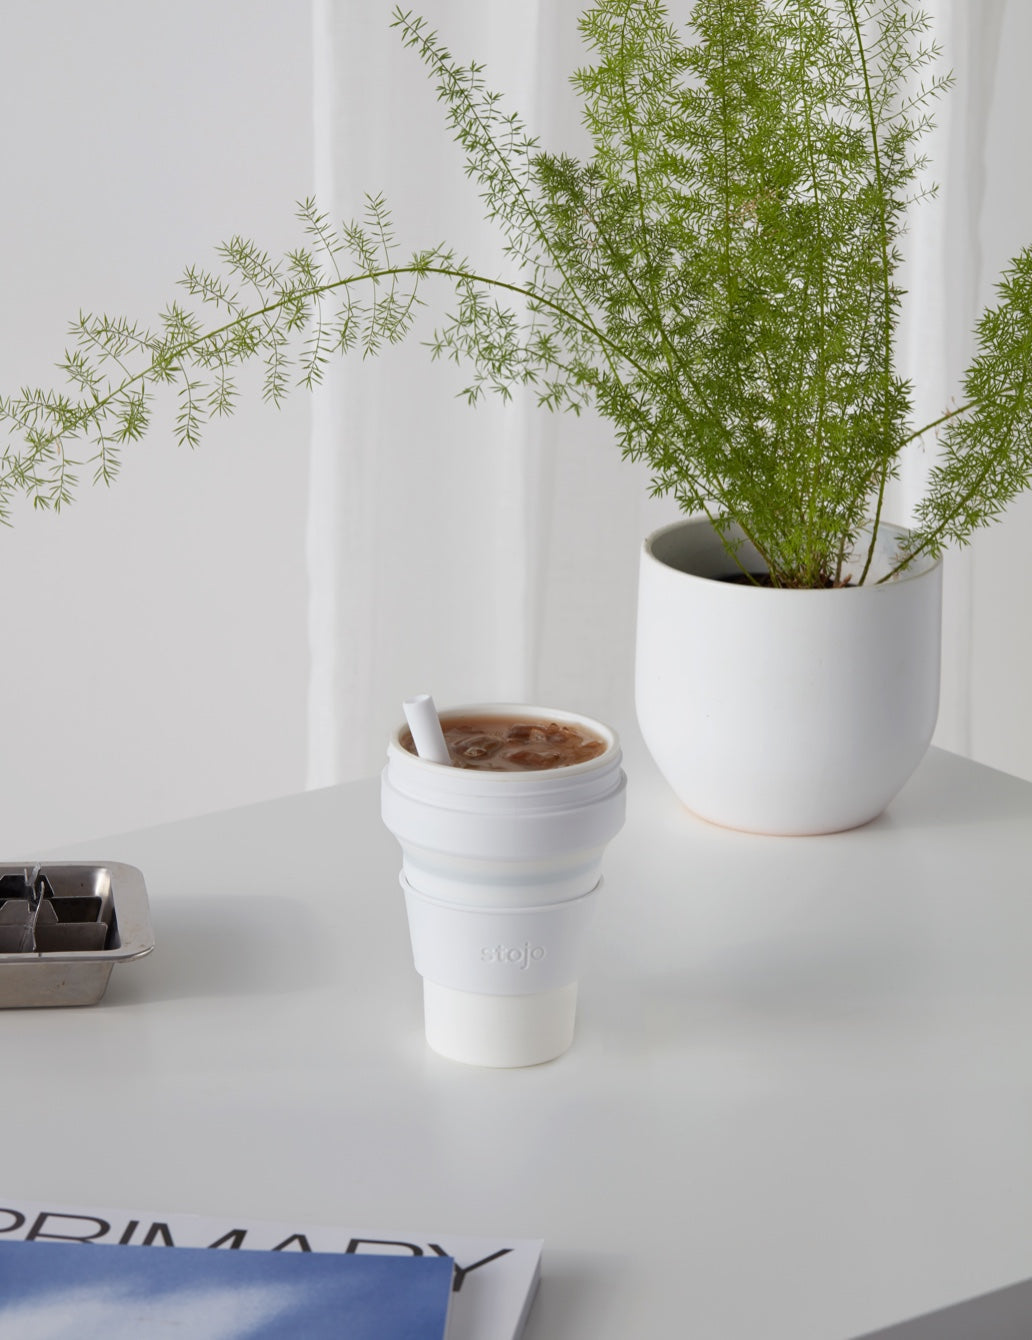 Stojo Uses the Safest Materials with its Cups, Lids, Straws, and Bottles